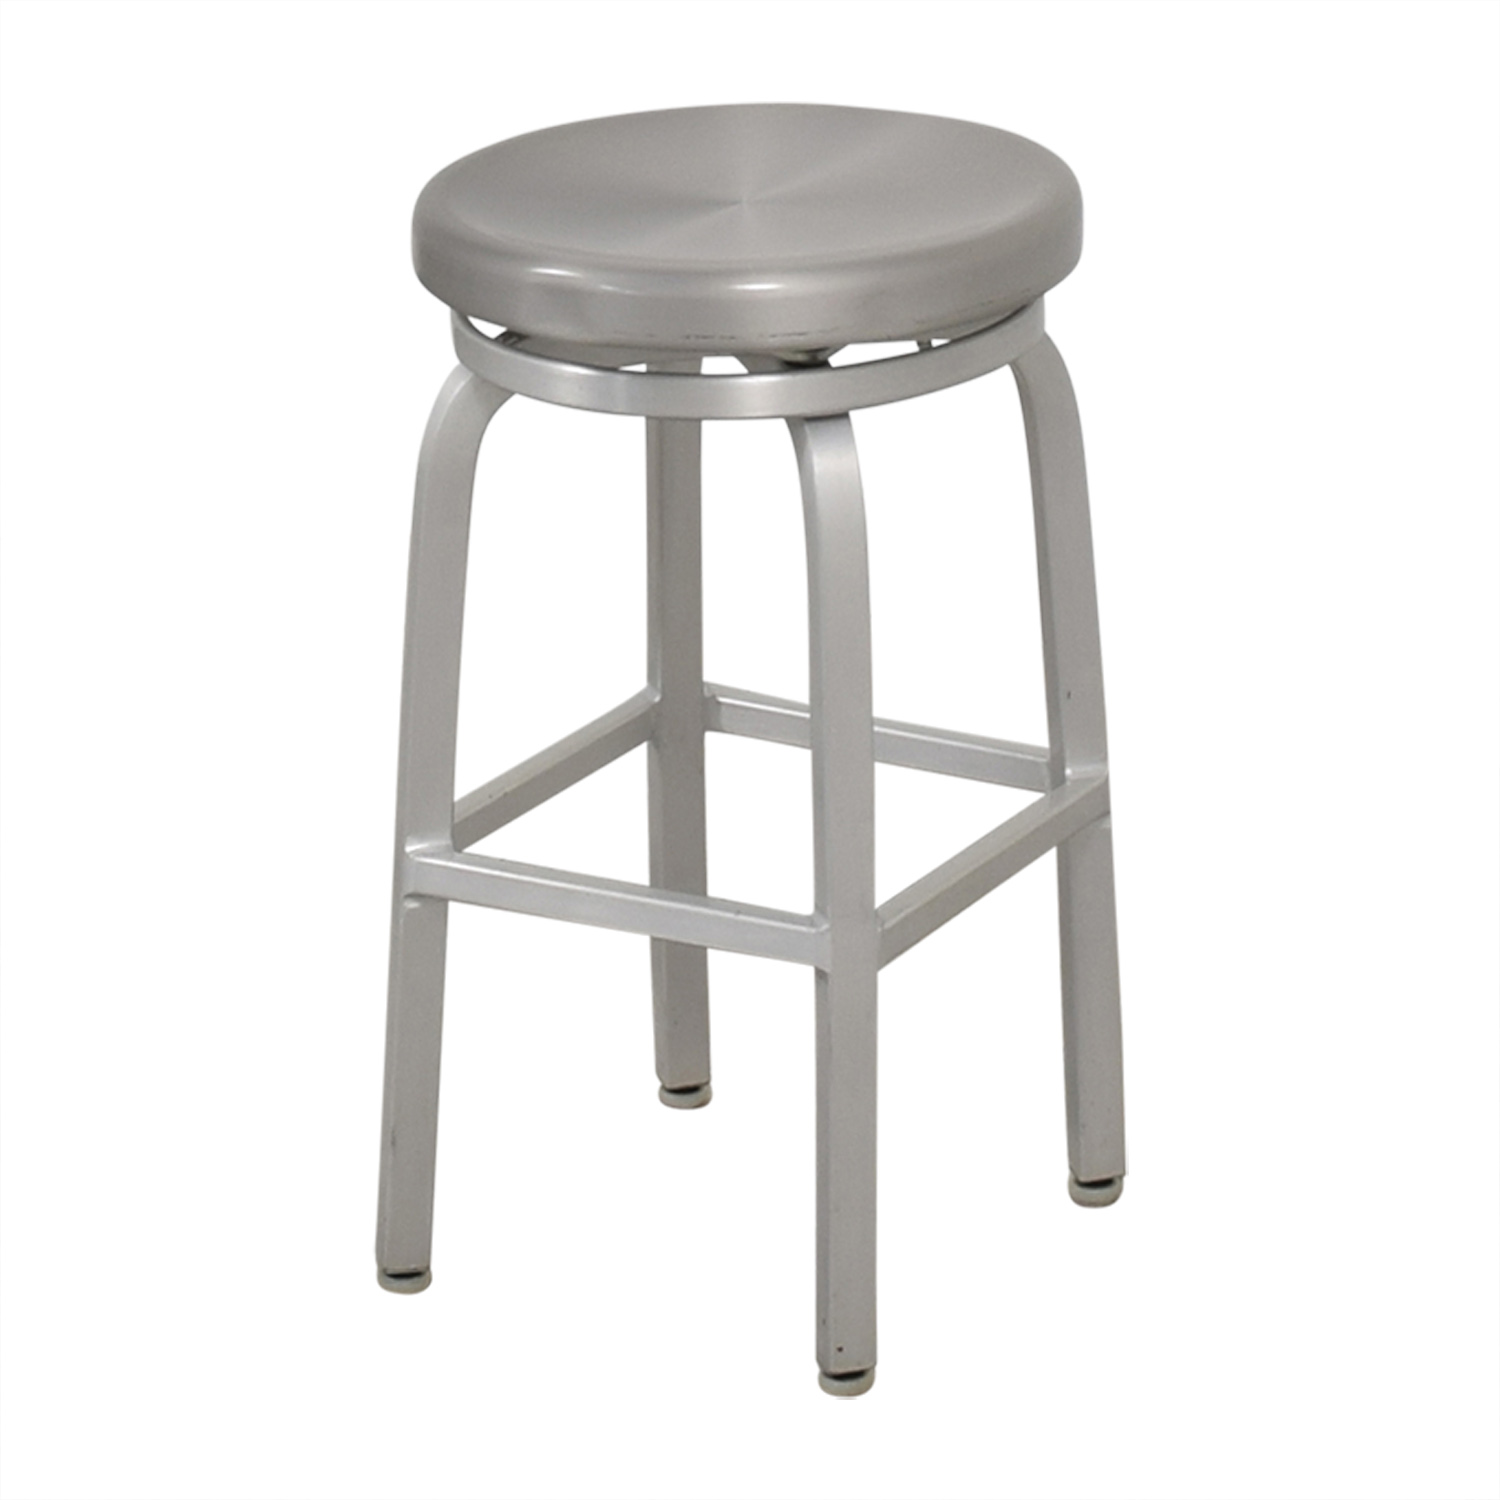 Crate & Barrel Crate & Barrel Spin Swivel Backless Counter Stool second hand